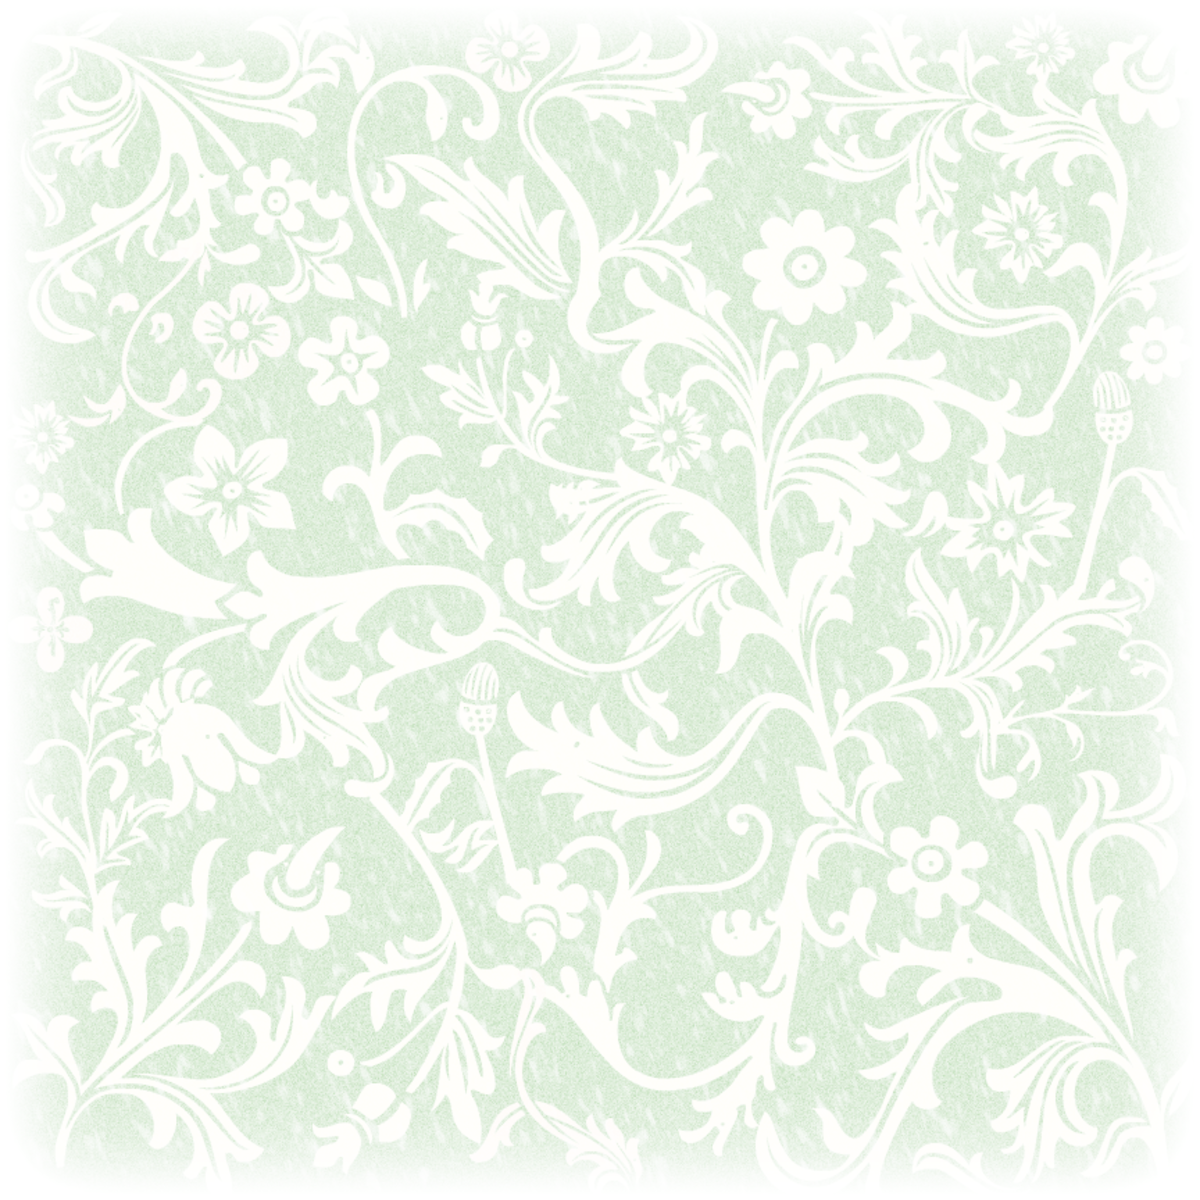 Free St. Patrick's Day green Victorian flowers scrapbooking paper